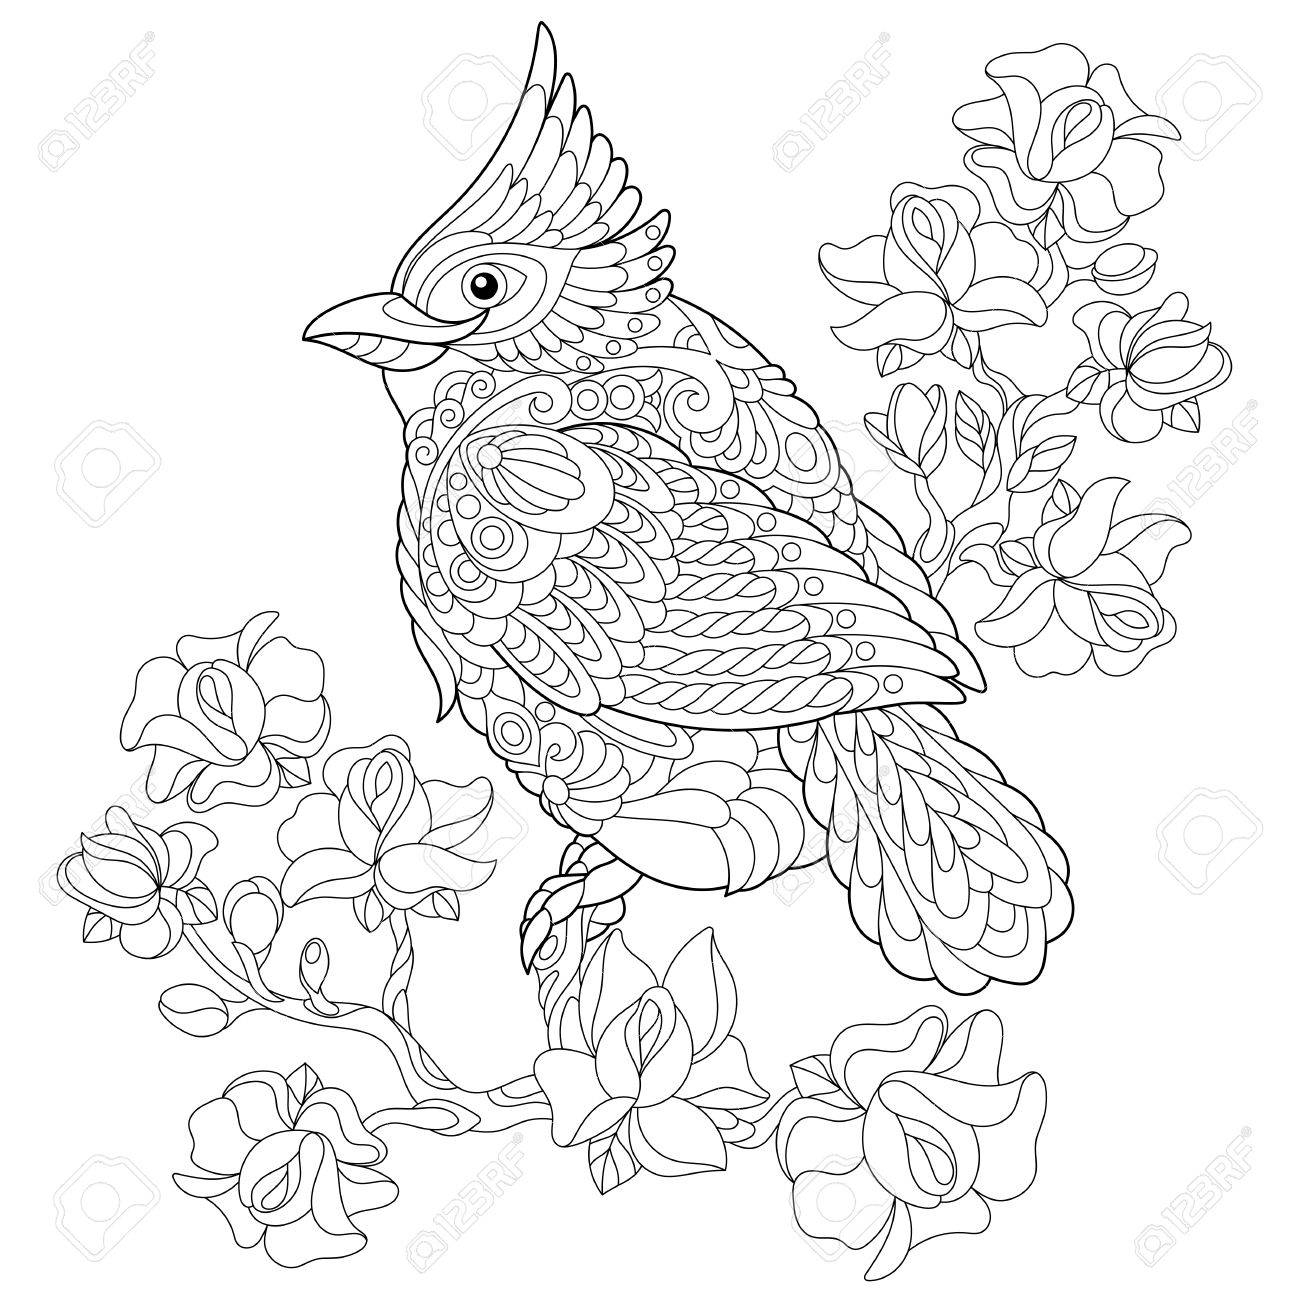 1300x1300 Coloring Book Page Of Northern Red Cardinal Bird Sitting On Cherry